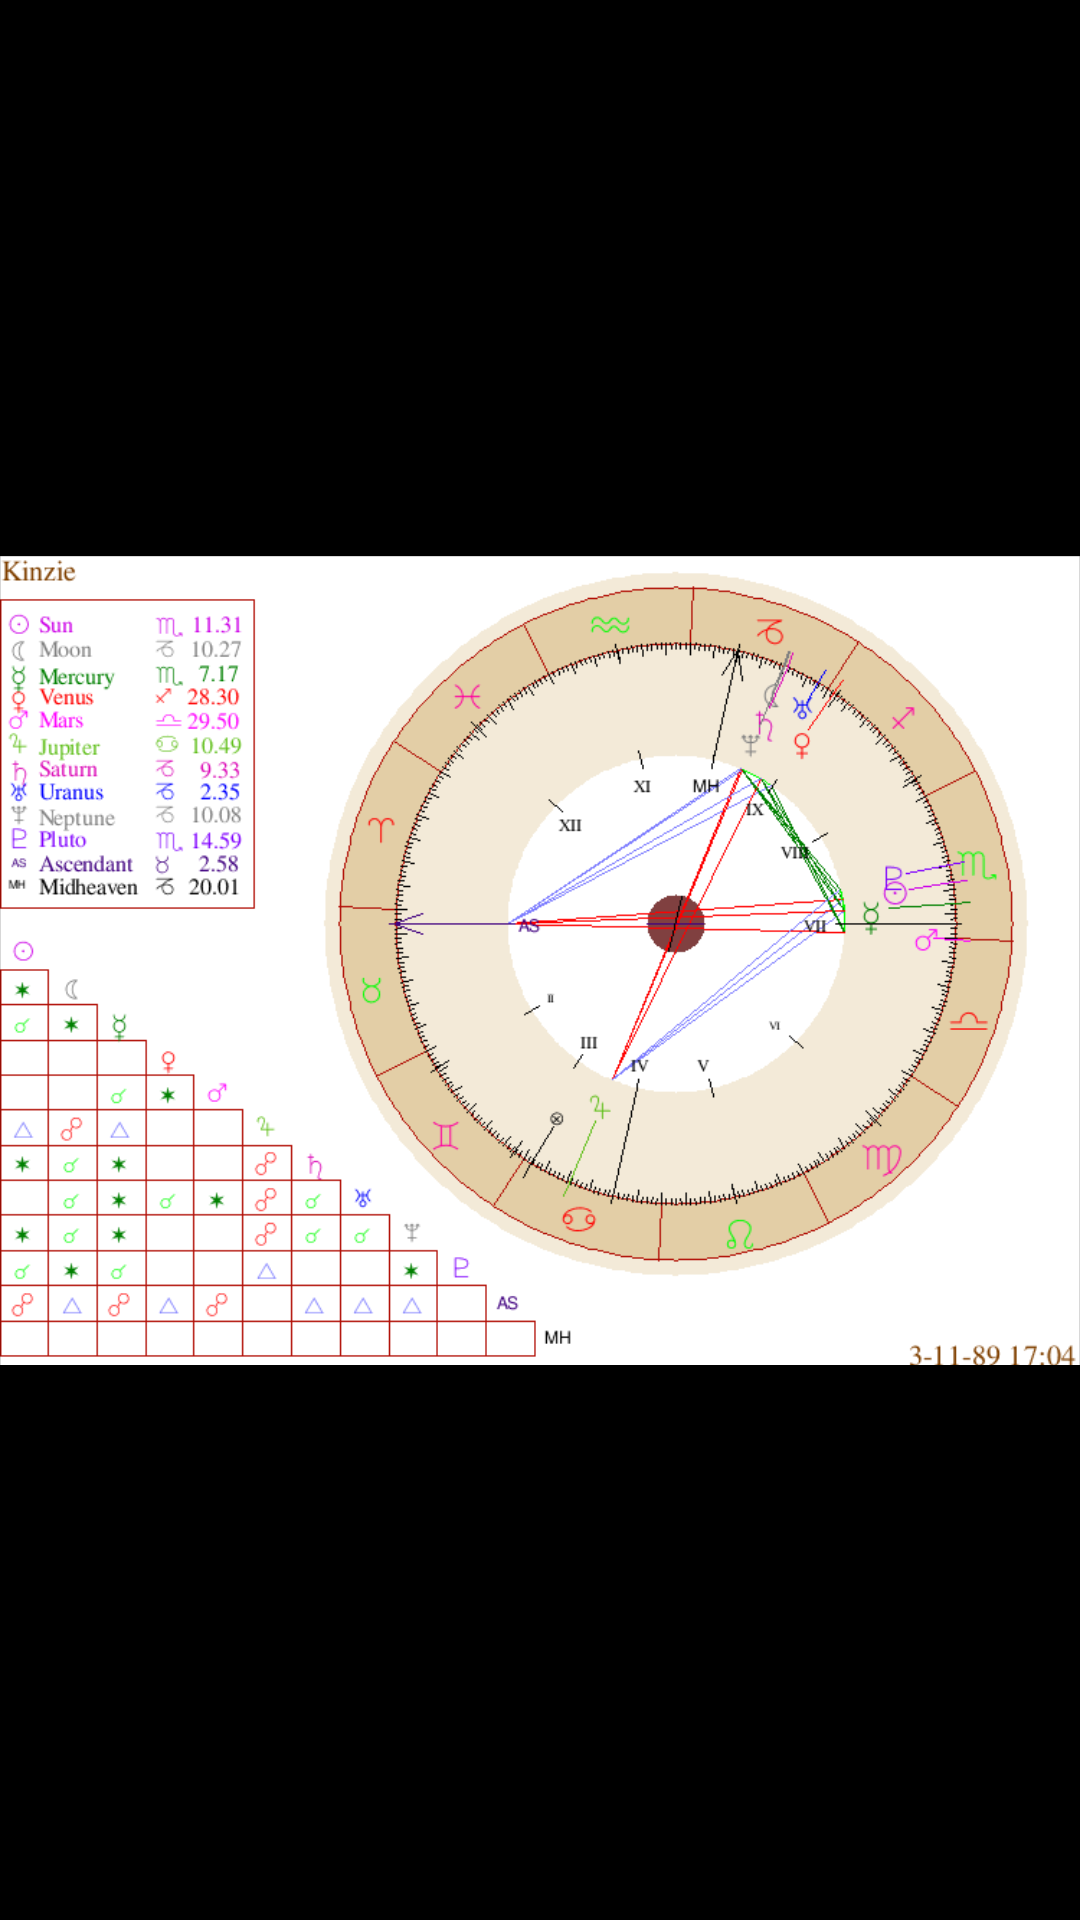 800 birth chart images free any chart examples 800 horoscope birth chart image collections free any chart examples 800 birth chart gallery free any nvjuhfo Gallery